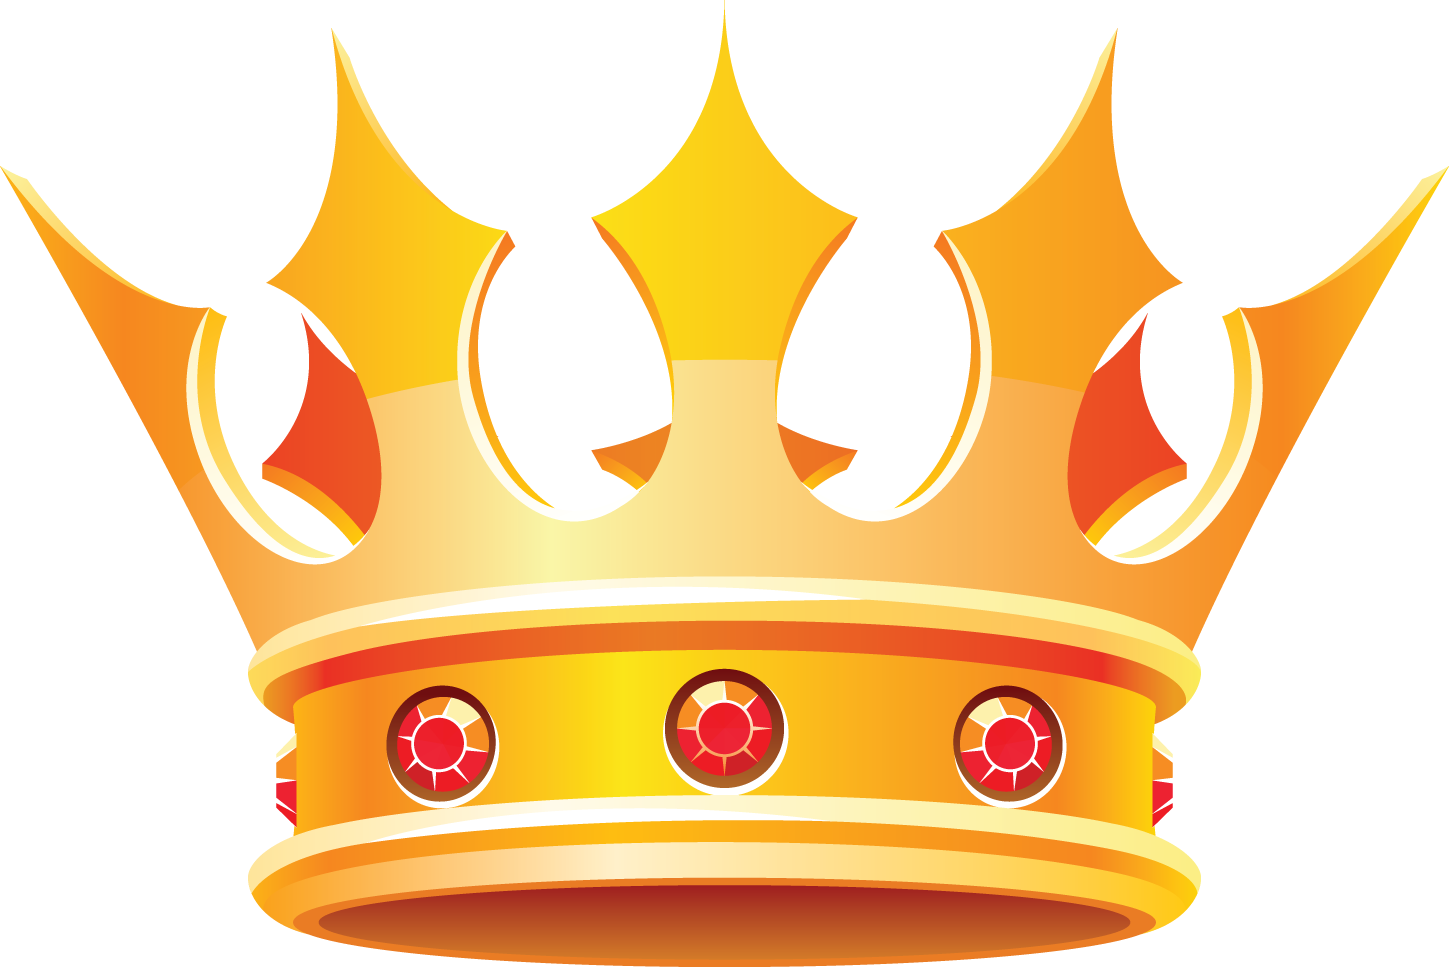 King Queen Crown Clip Art free image.